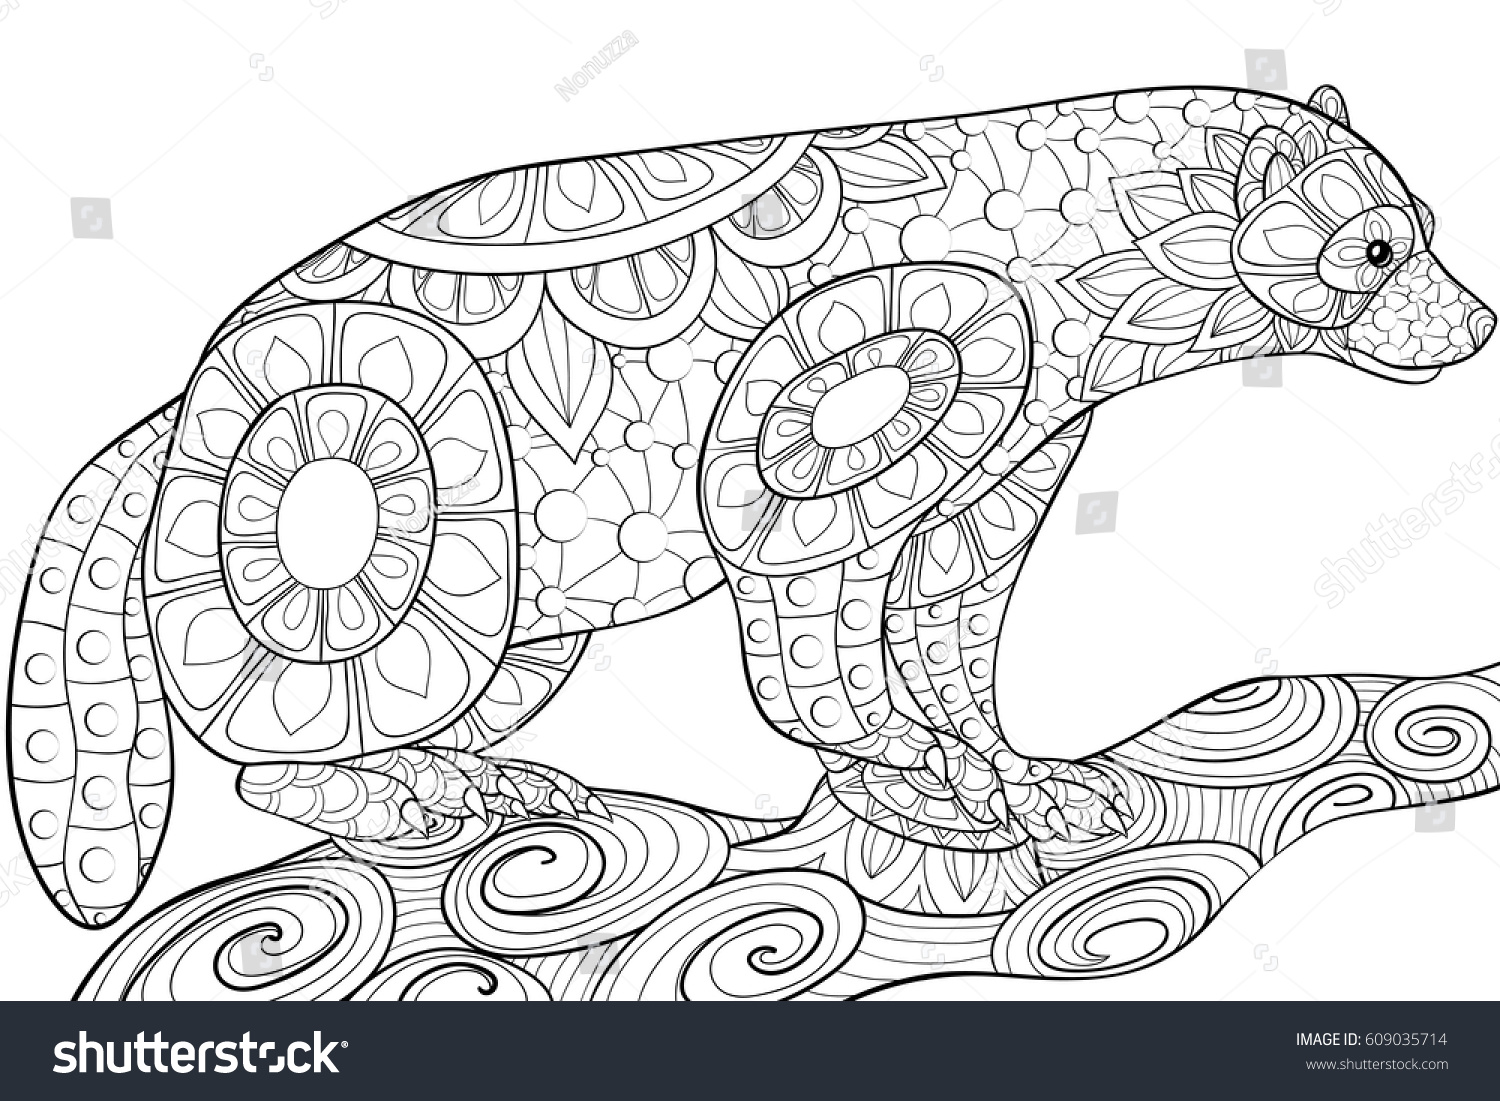 Adult Coloring Bookpages AnimalZen Art Style